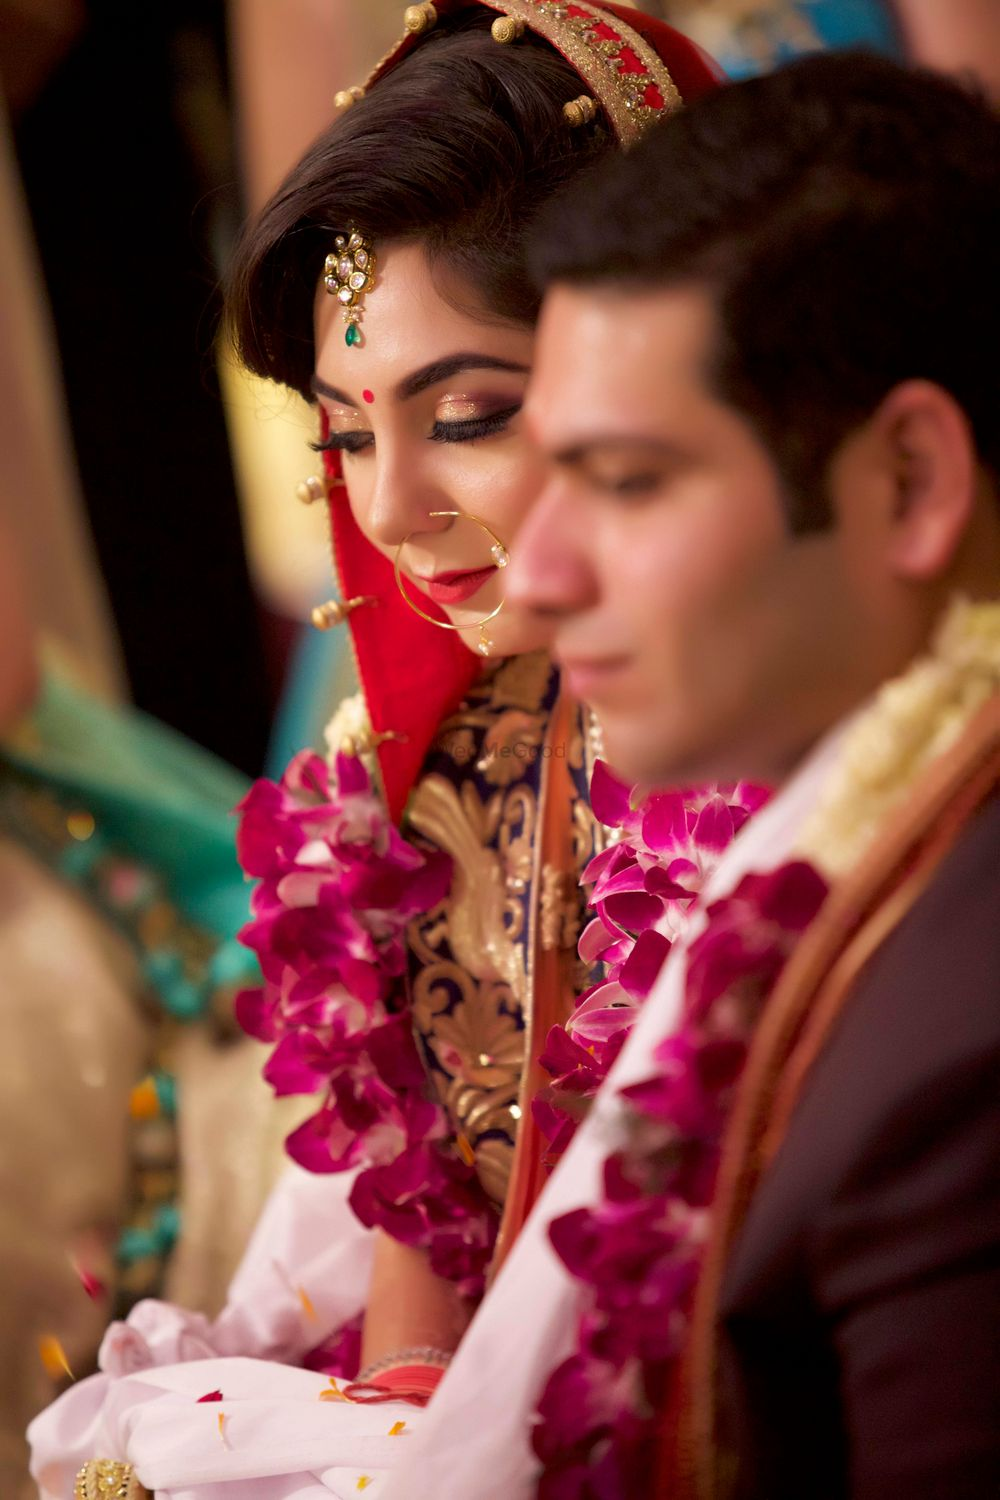 Photo From dimple and karan - By The Film Maker